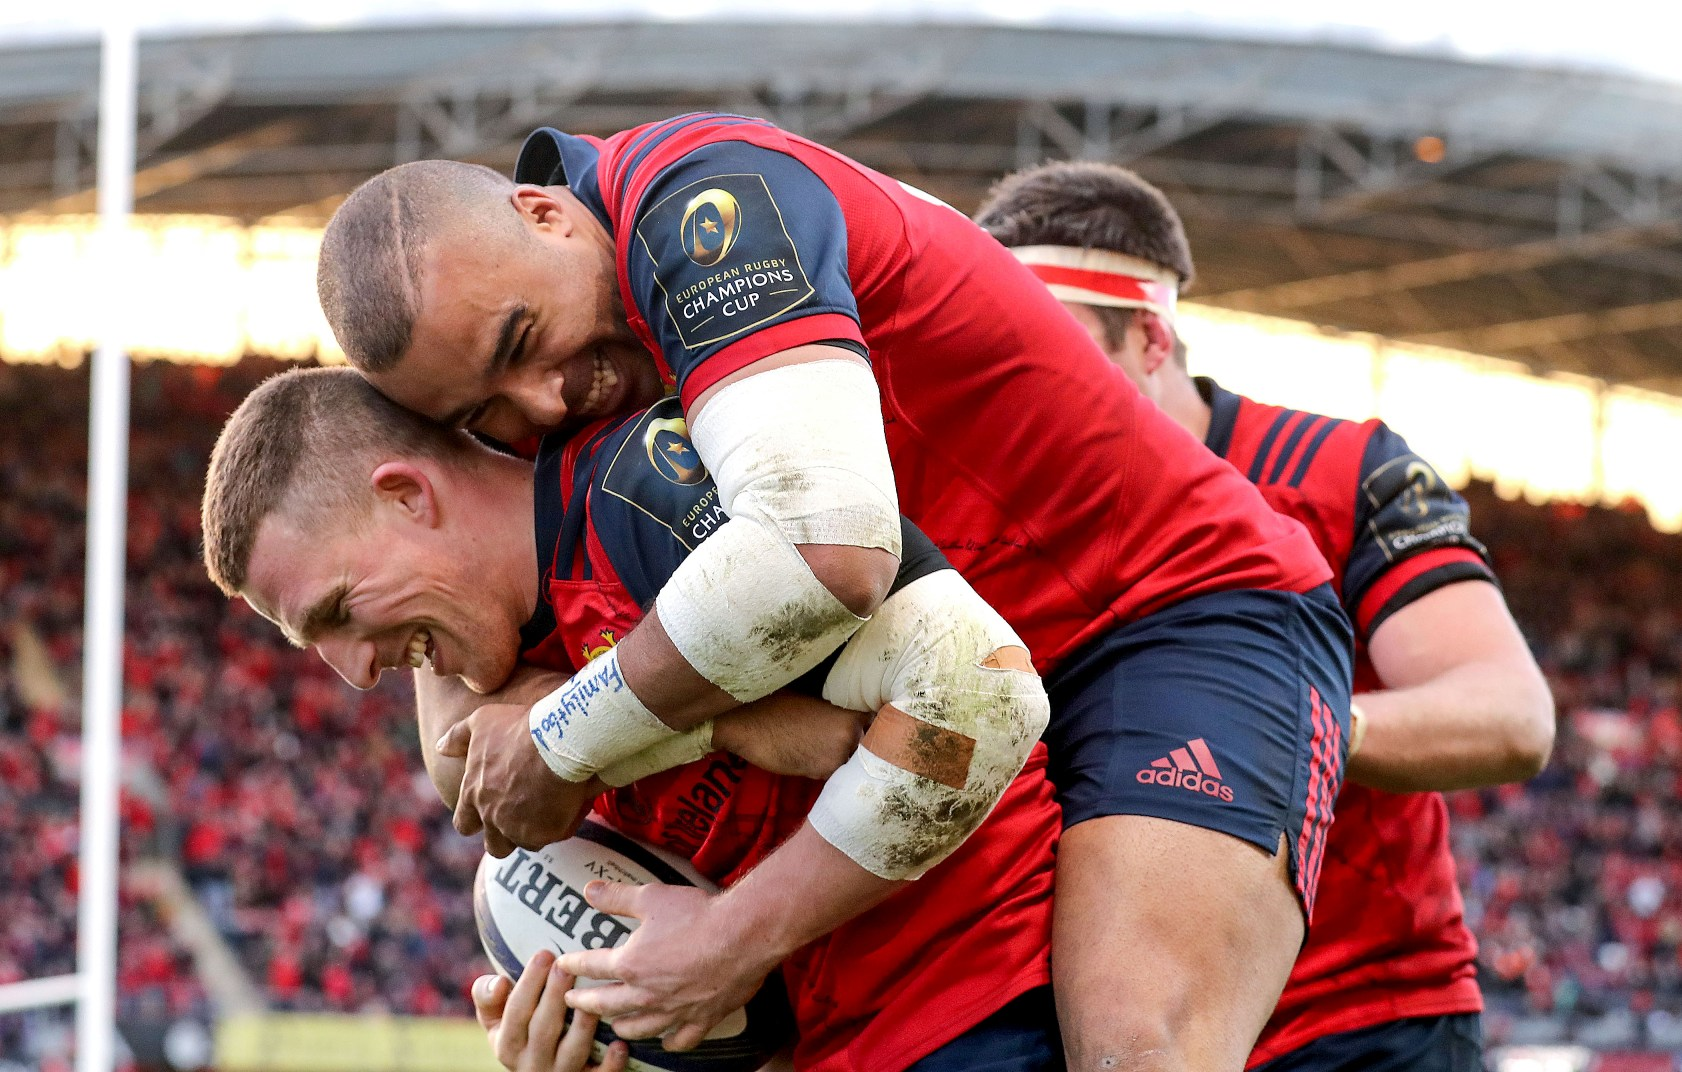 Munster's magic set to be put to the test in three crunch matches